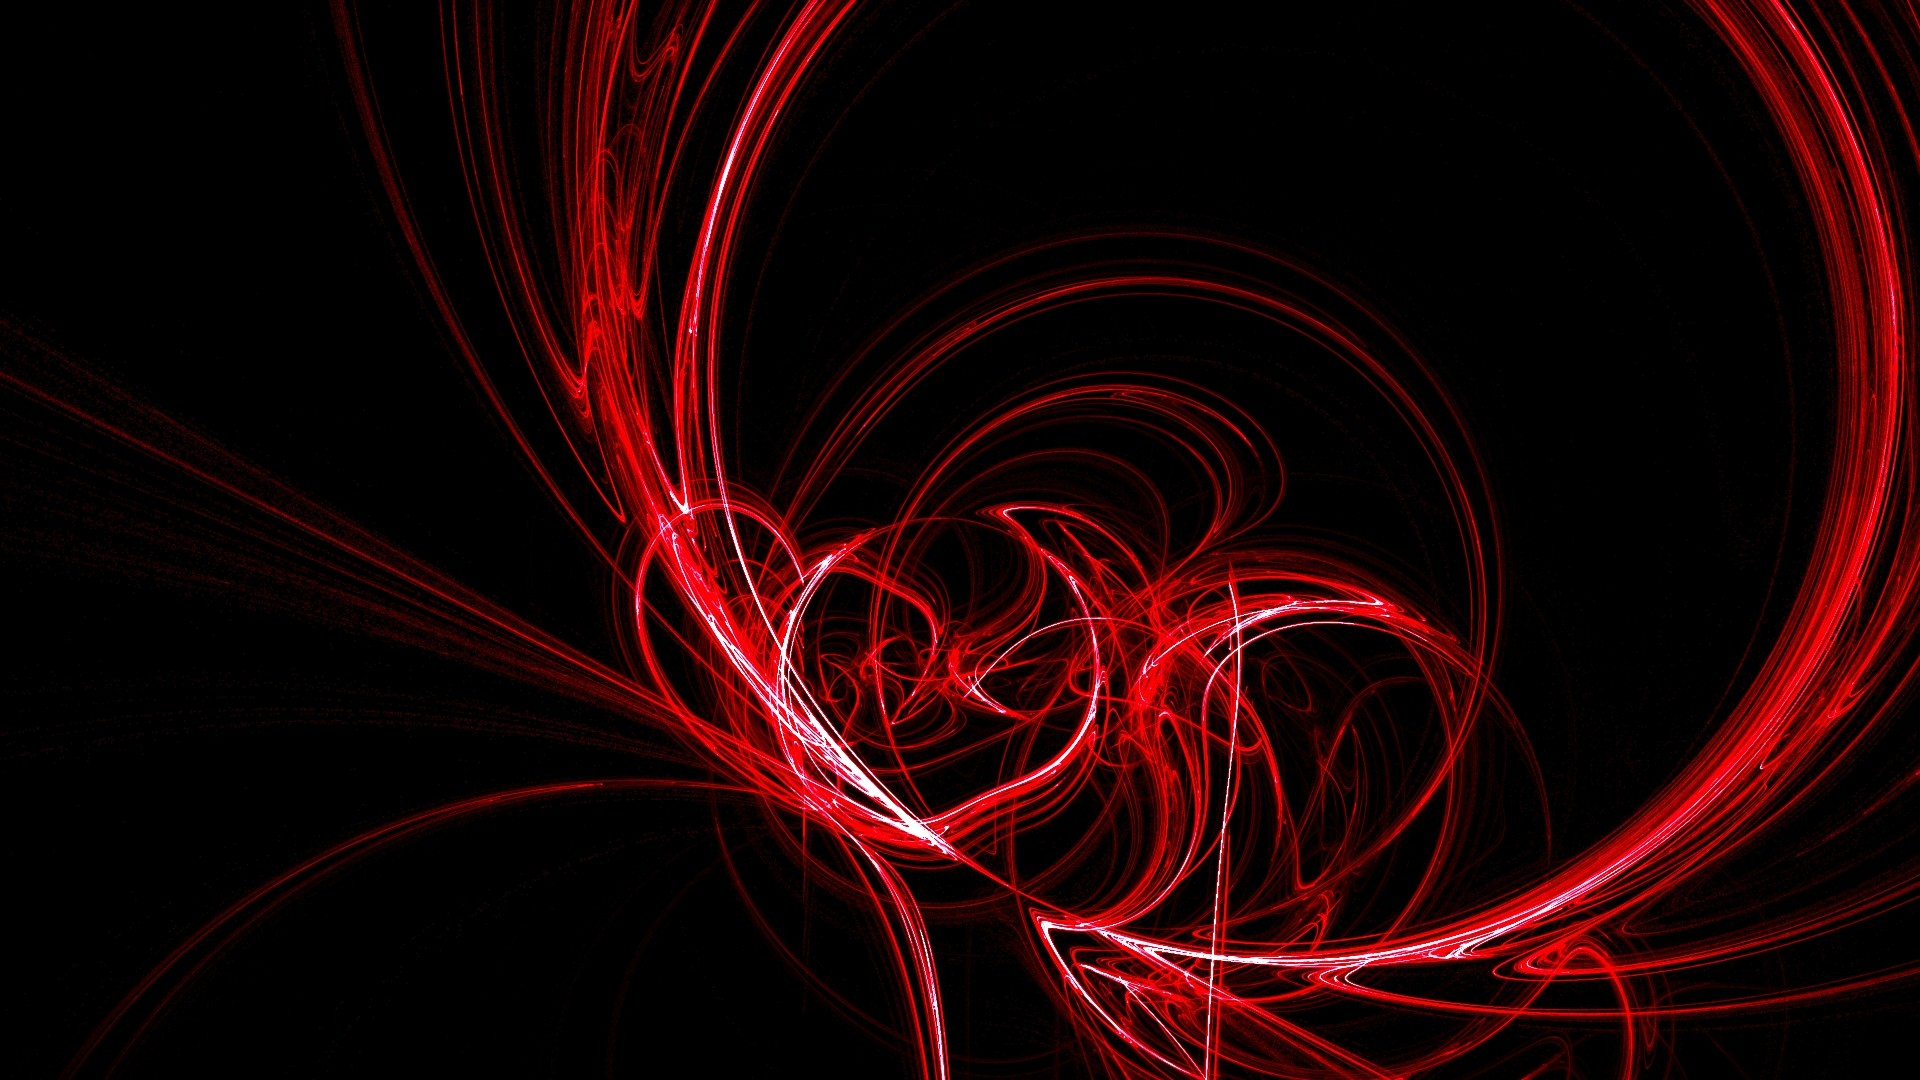 abstract wallpaper red images 1920×1080